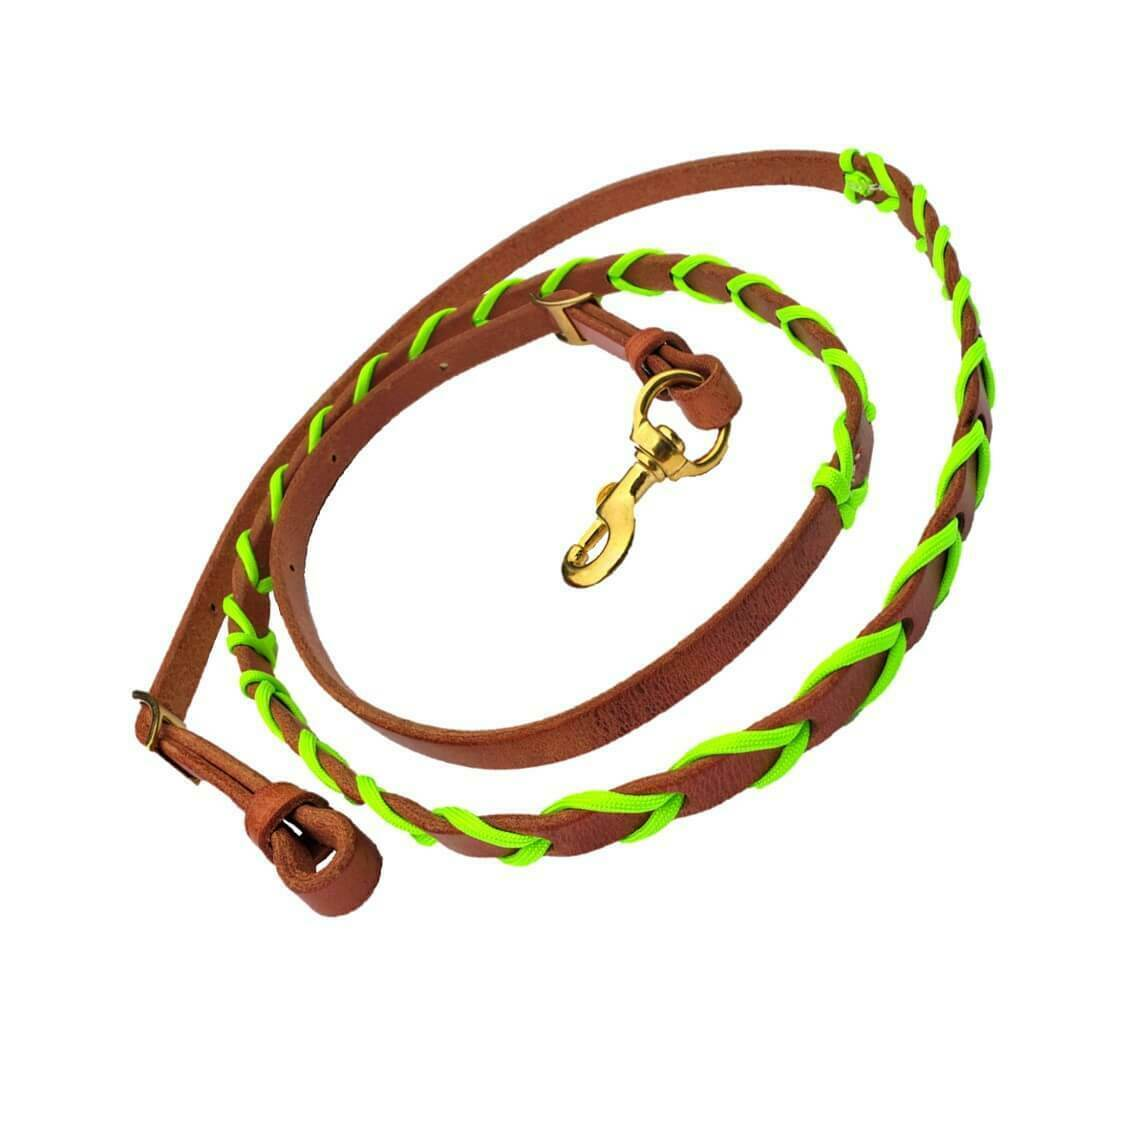 New Paracord Wrapped Leather Barrel Roping Leather Reins in Different Farbes